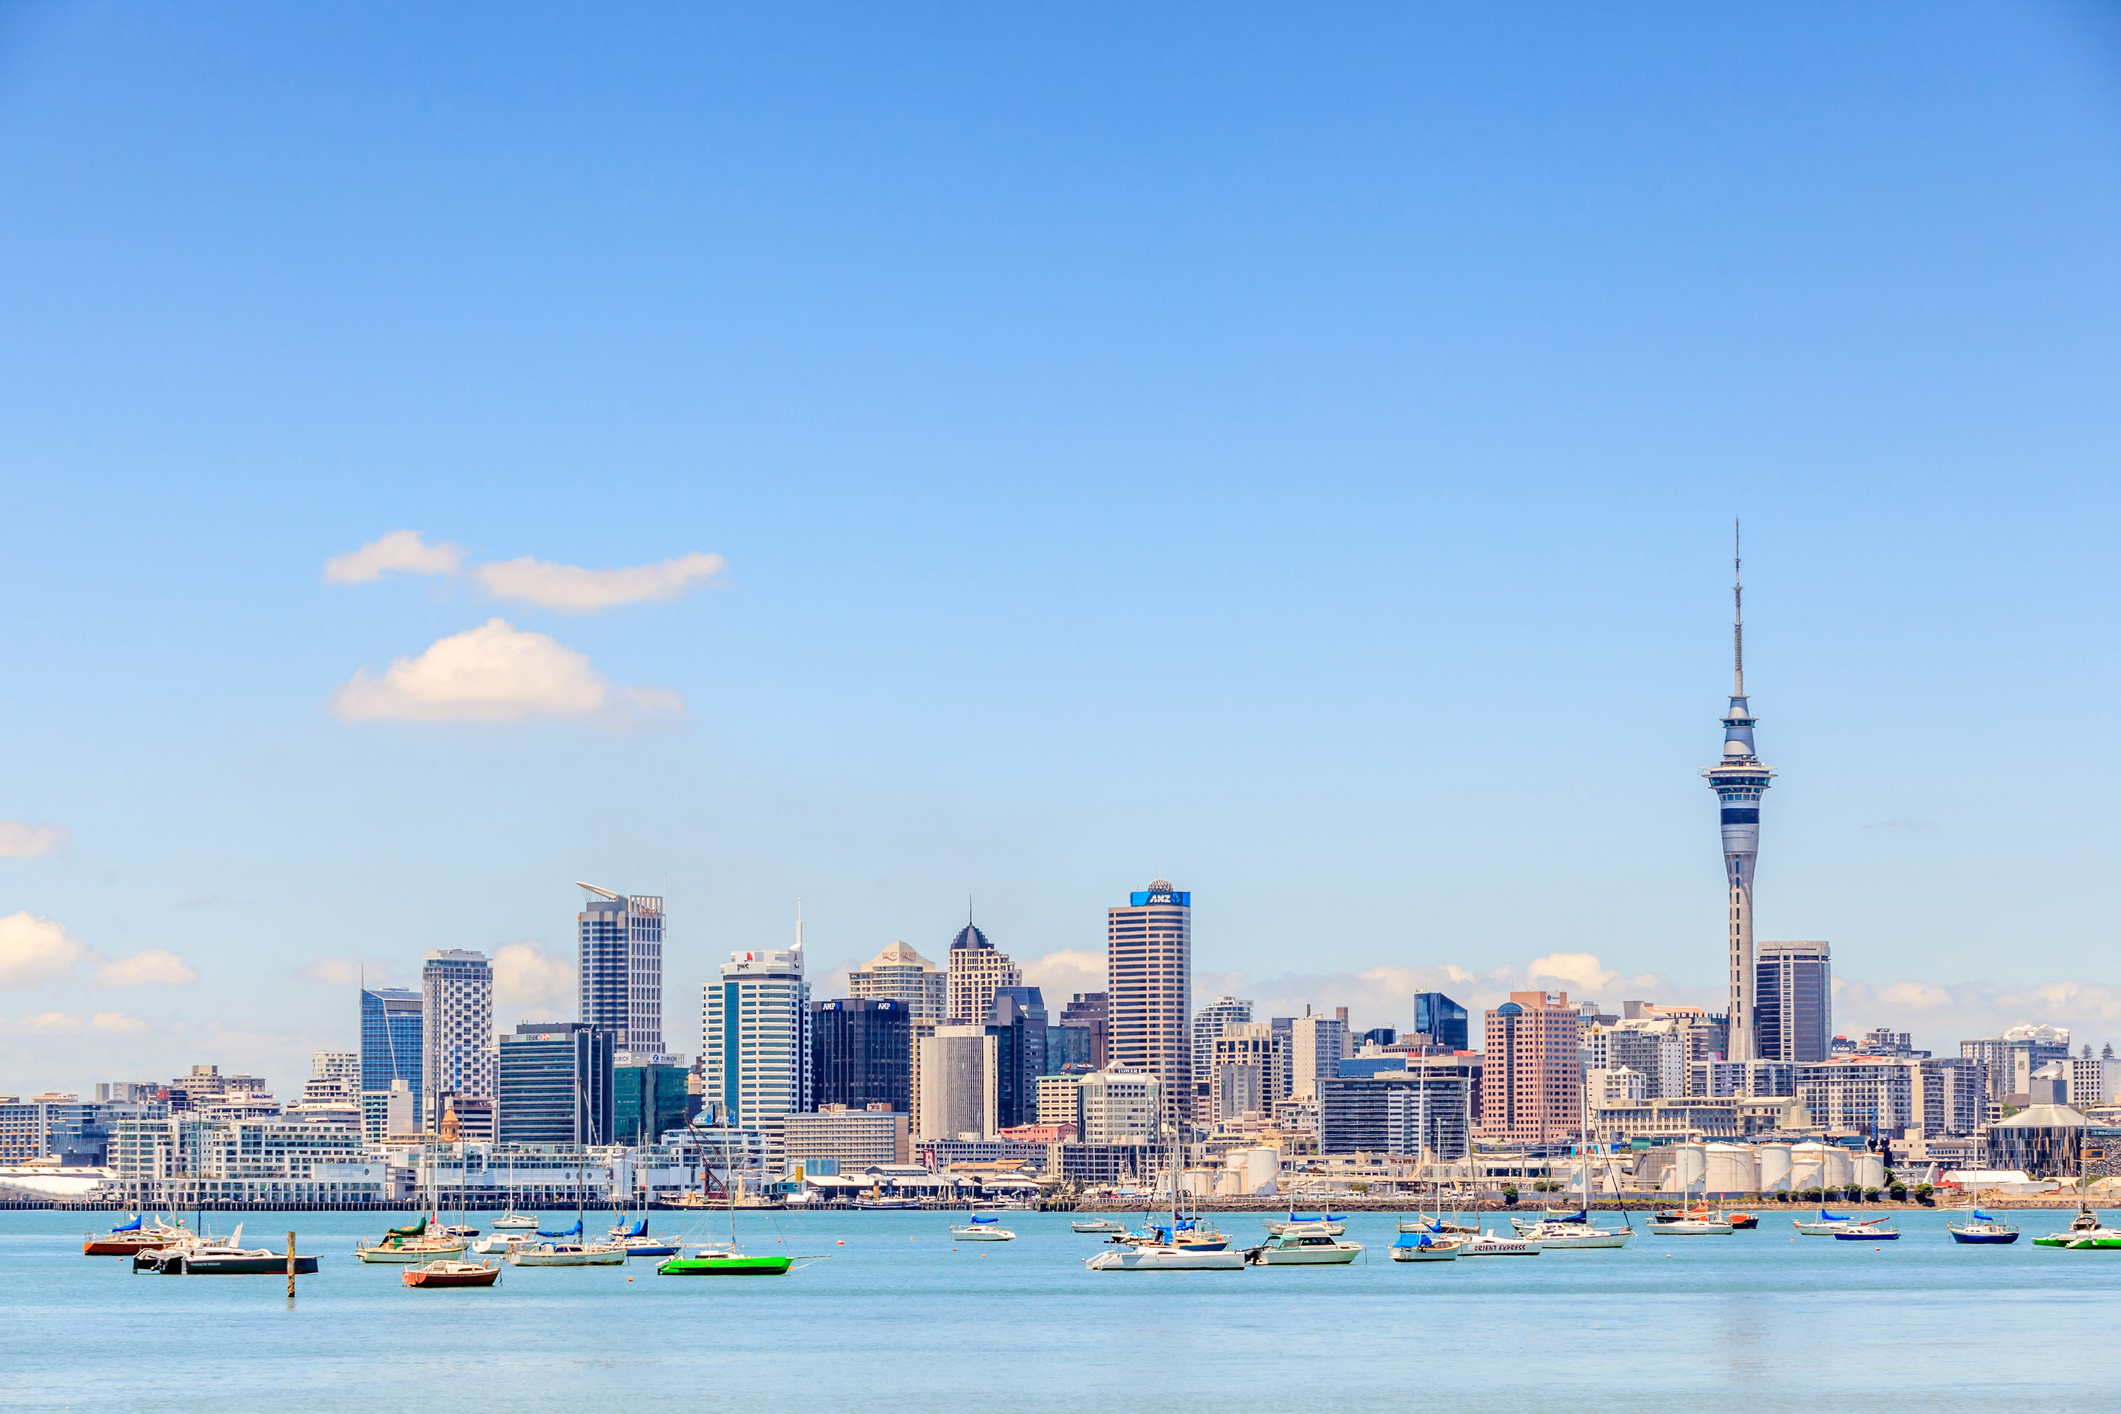 Auckland, New Zealand- December 12, 2013. Cityscape of Auckland sky tower.